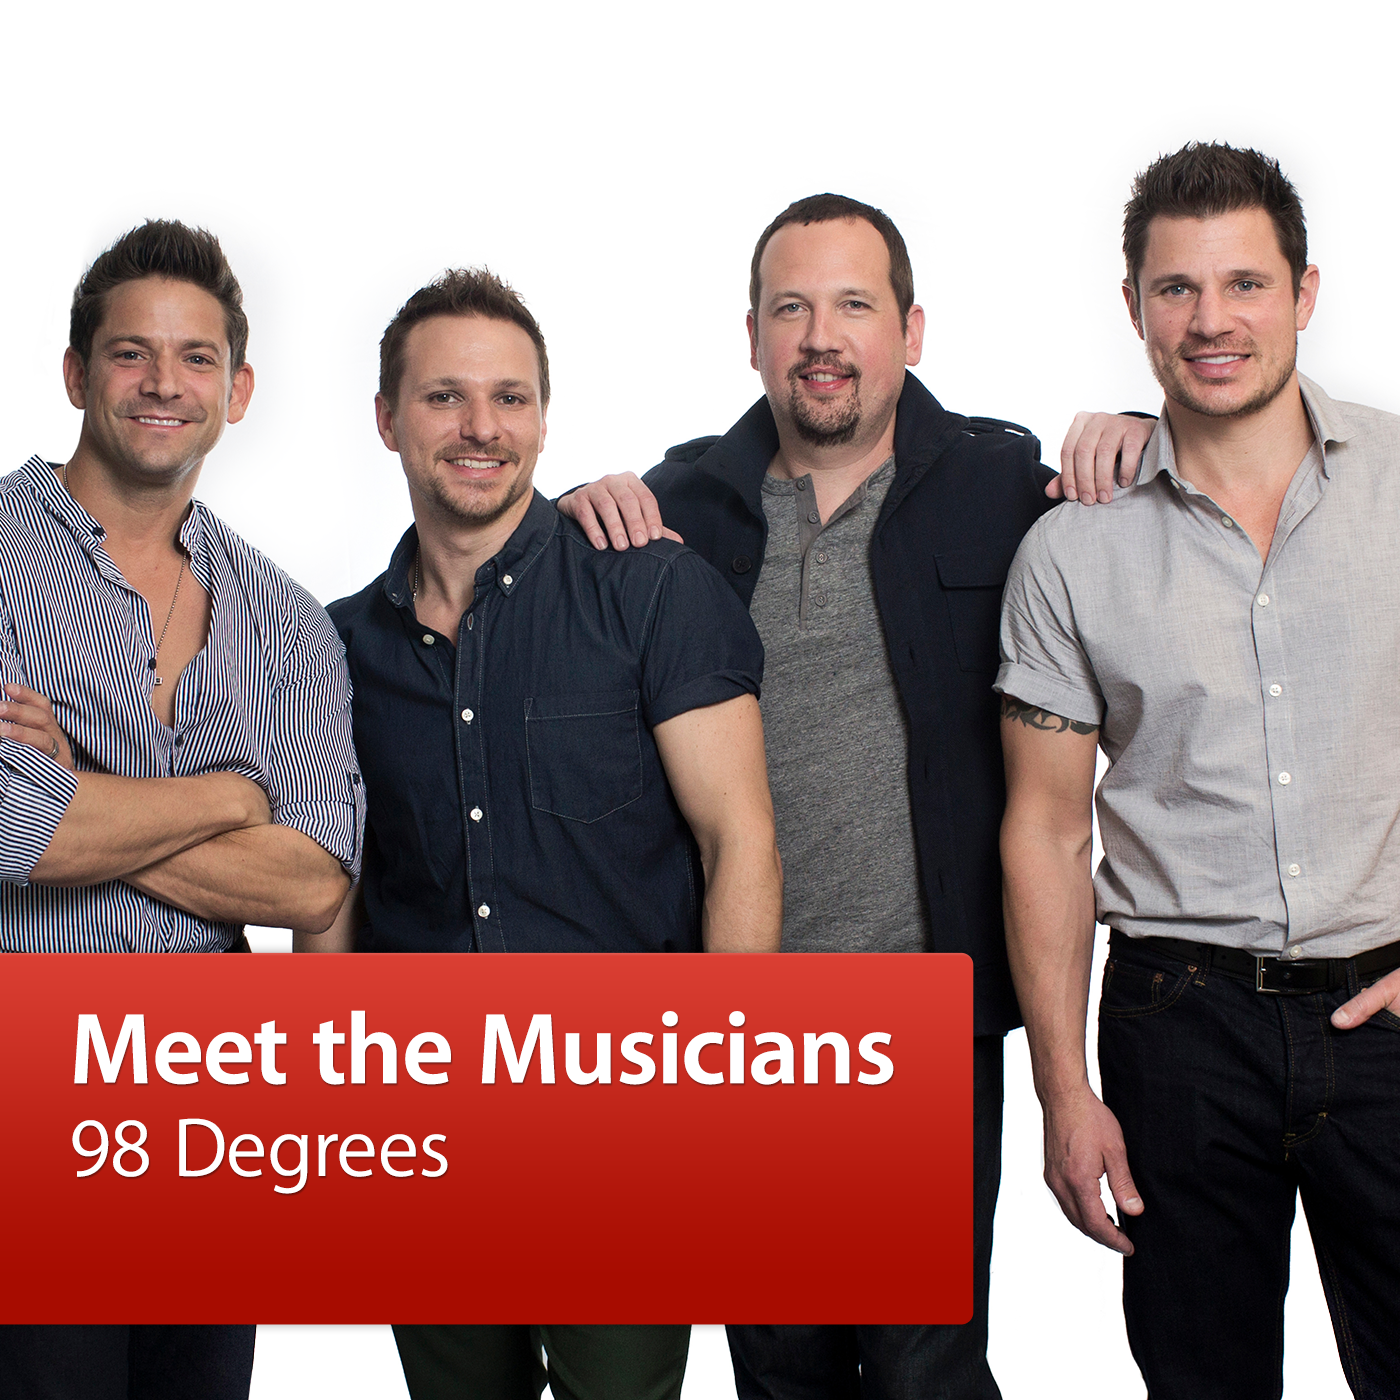 98 Degrees: Meet the Musicians